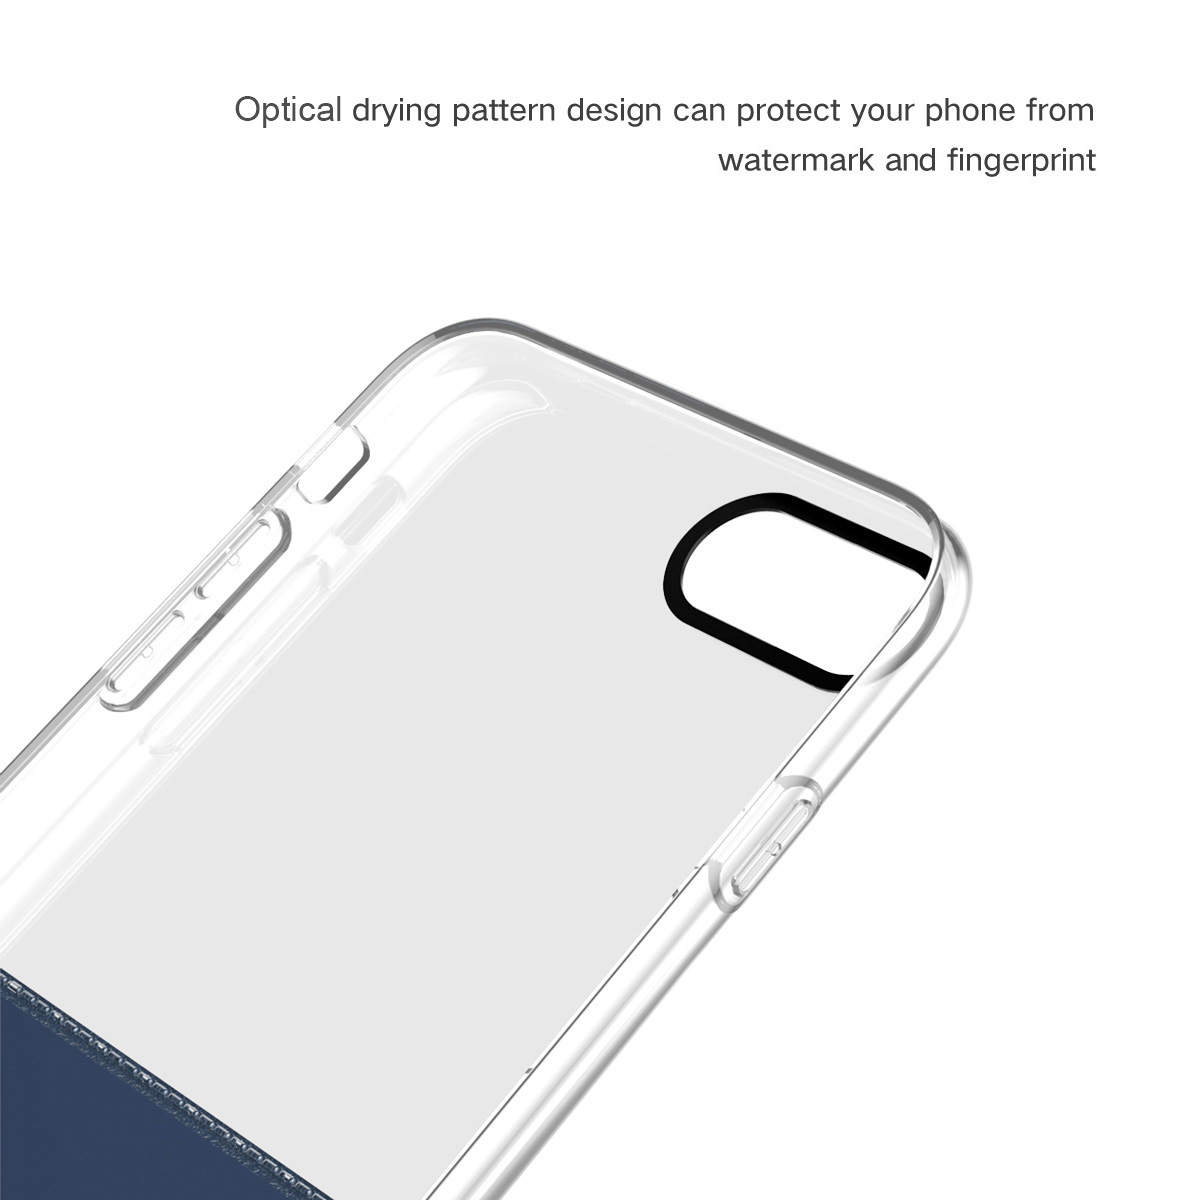 Baseus ARAPIPH7 - RY01 Soft Hard Back Cover for iPhone 7 4.7 inch